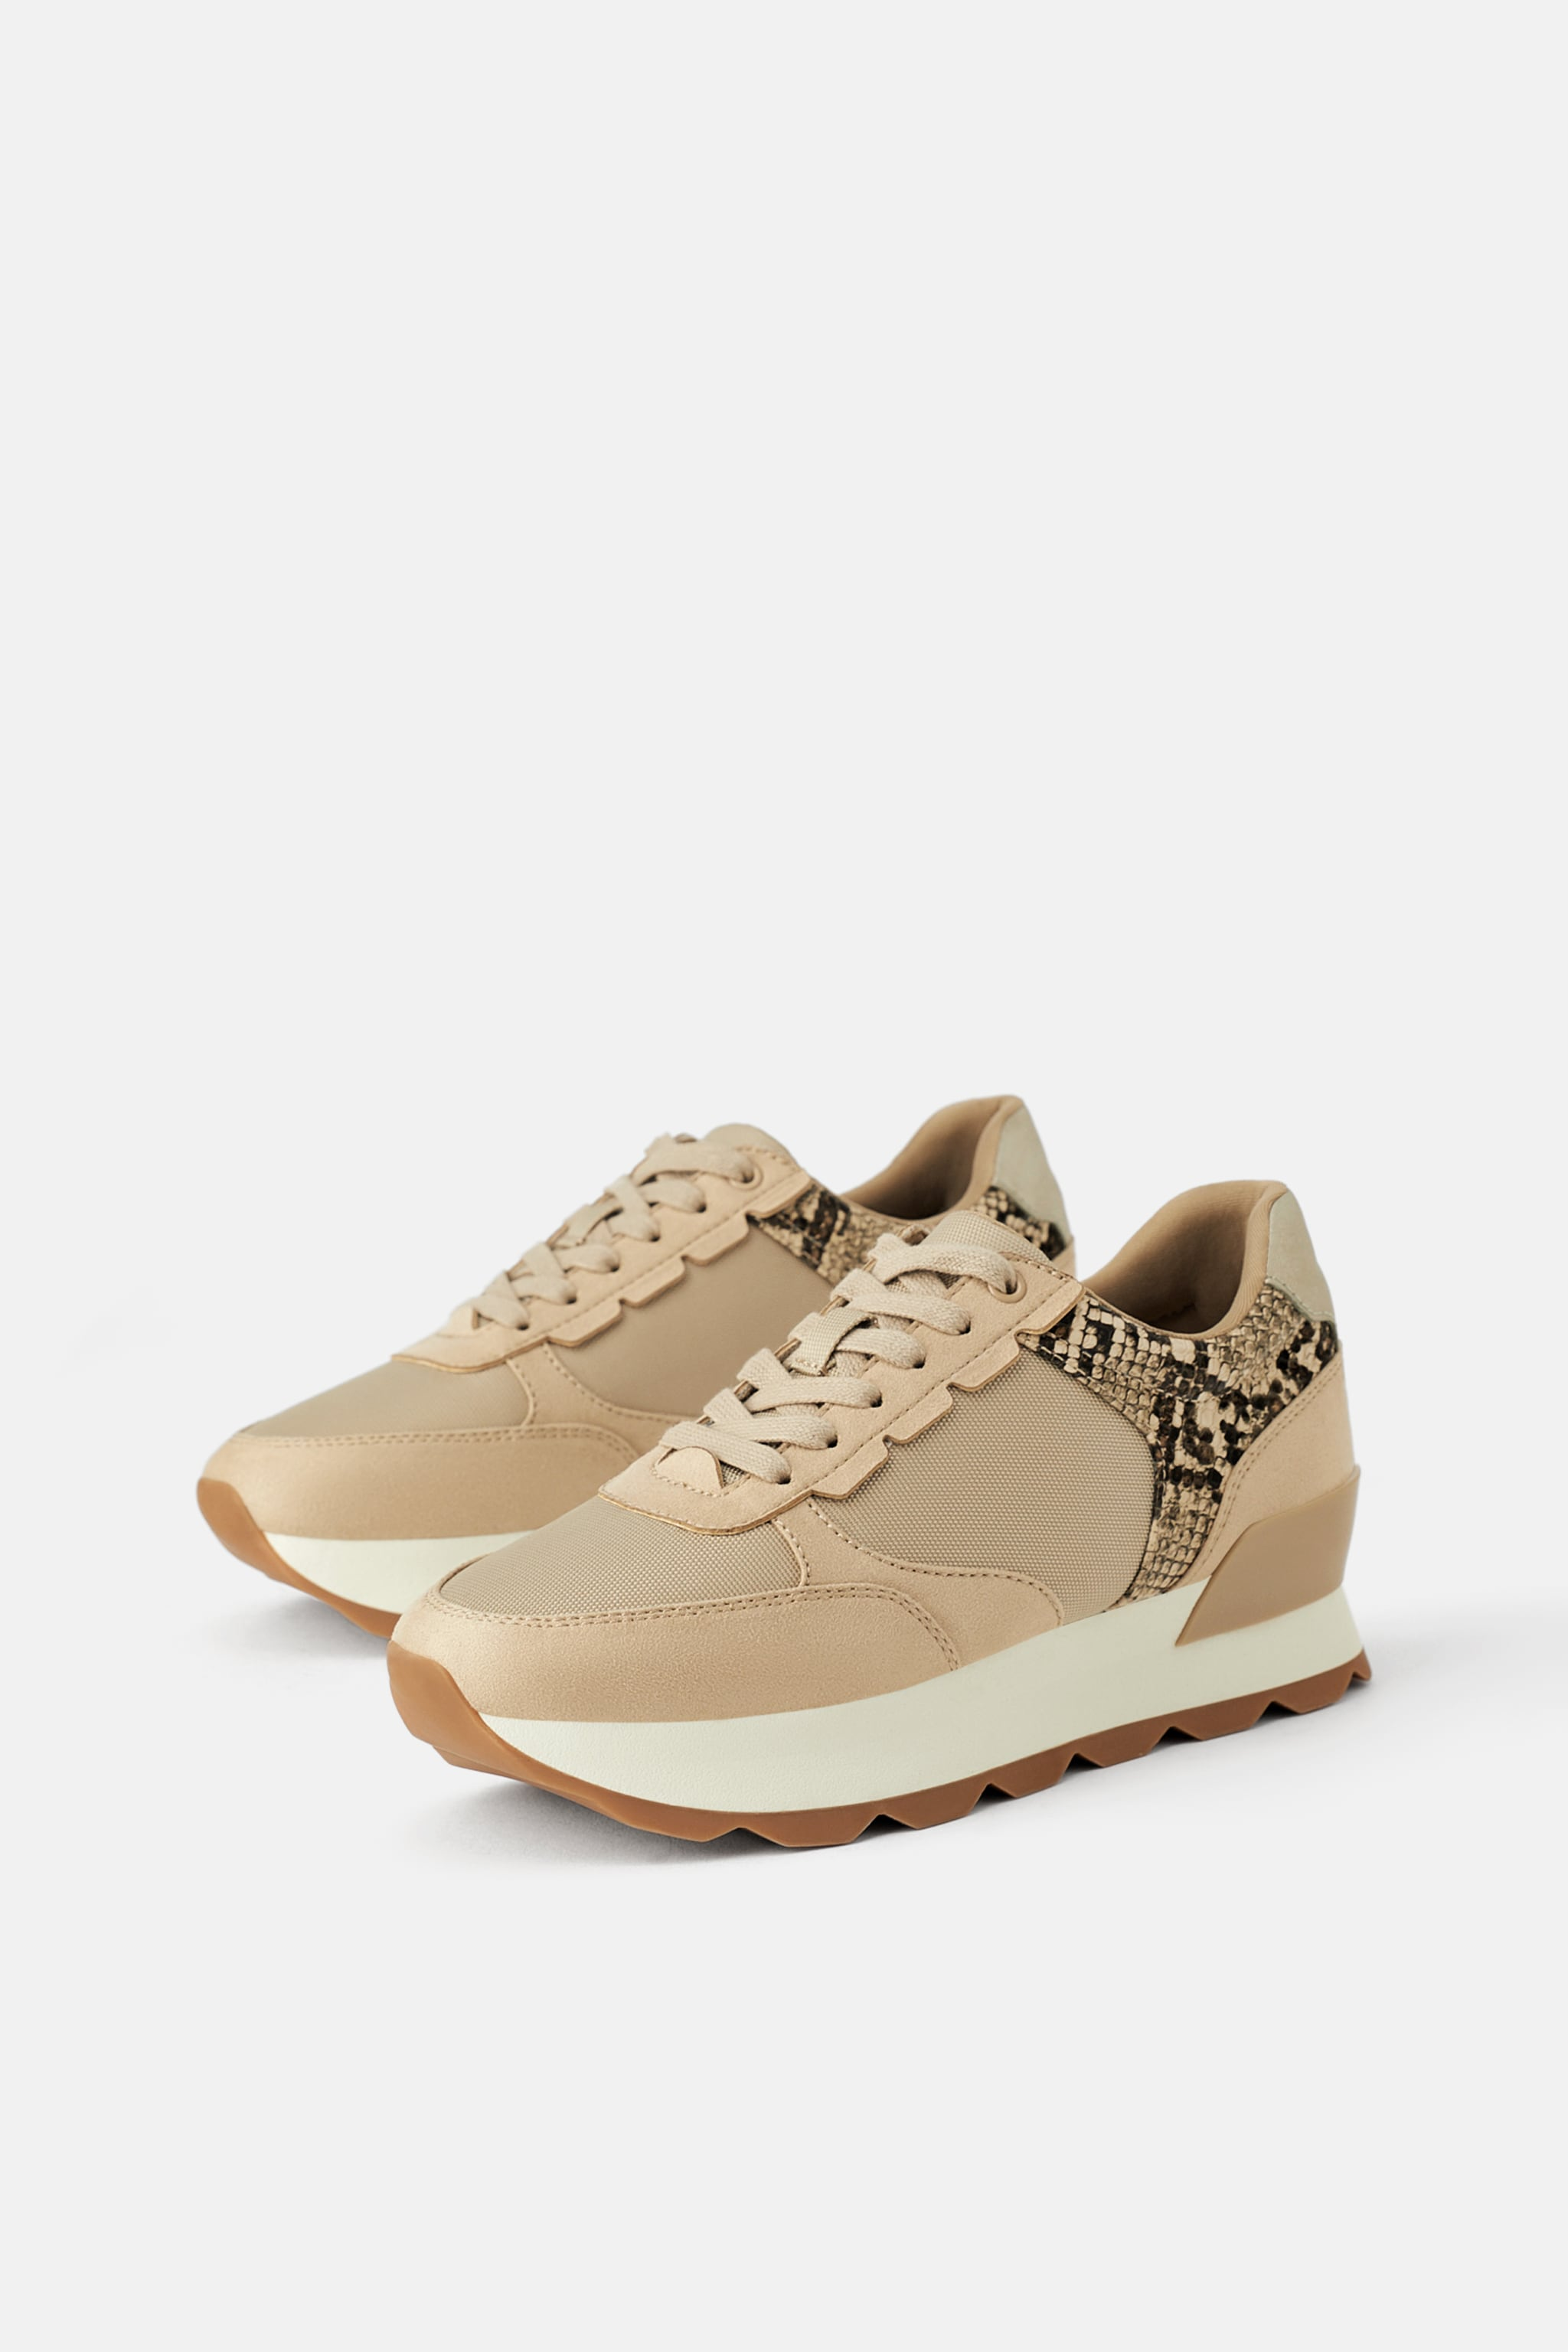 4128f1cae Zara SNEAKERS WITH ANIMAL PRINT PIECES